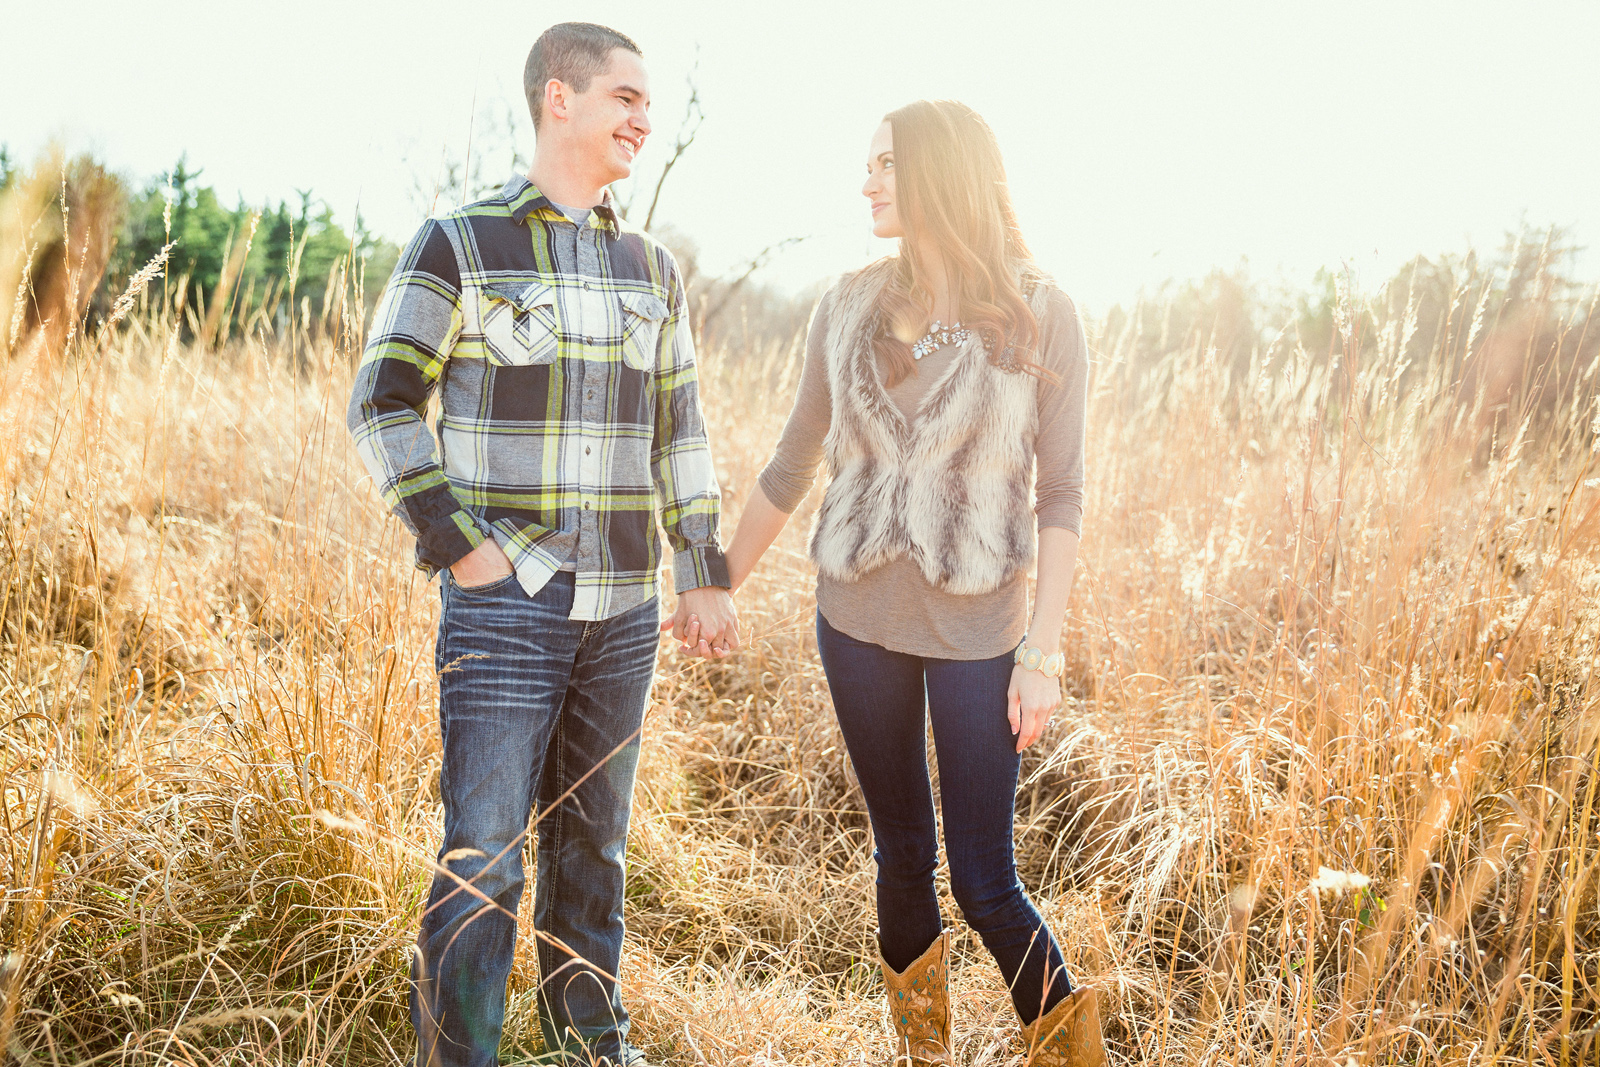 Oldani-Photography-St-Charles-August-A-Busch-Memorial-Area-Engagement-Session-engagement-photos_20141128_151355-2.jpg